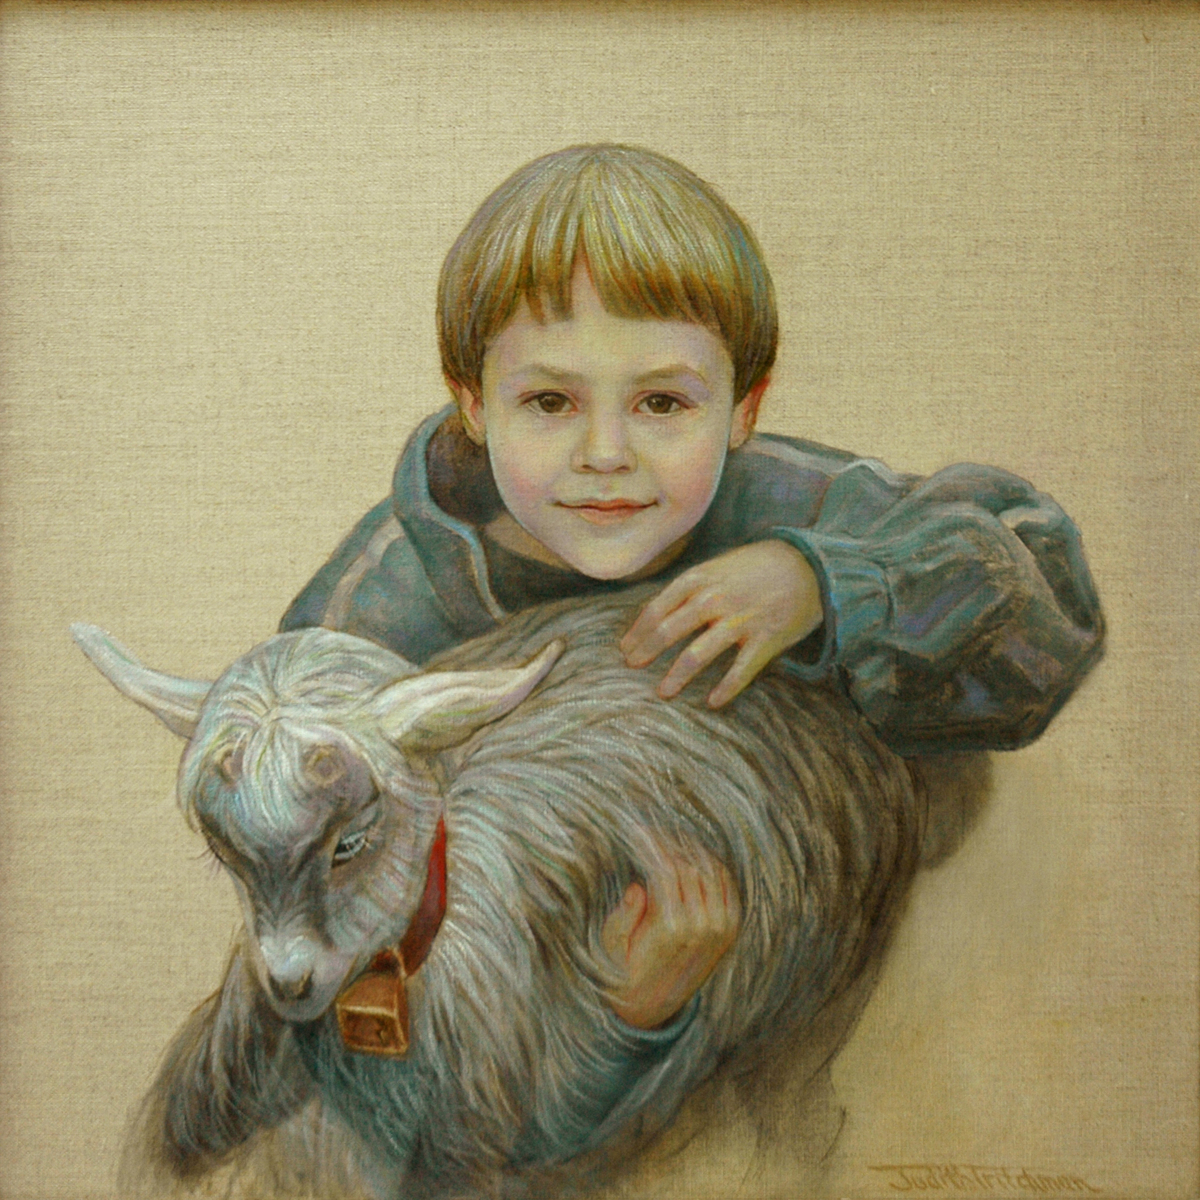 OIl painting on natural linen of a young boy filled with joy and expectation about  making friends with a small goat. (large view)